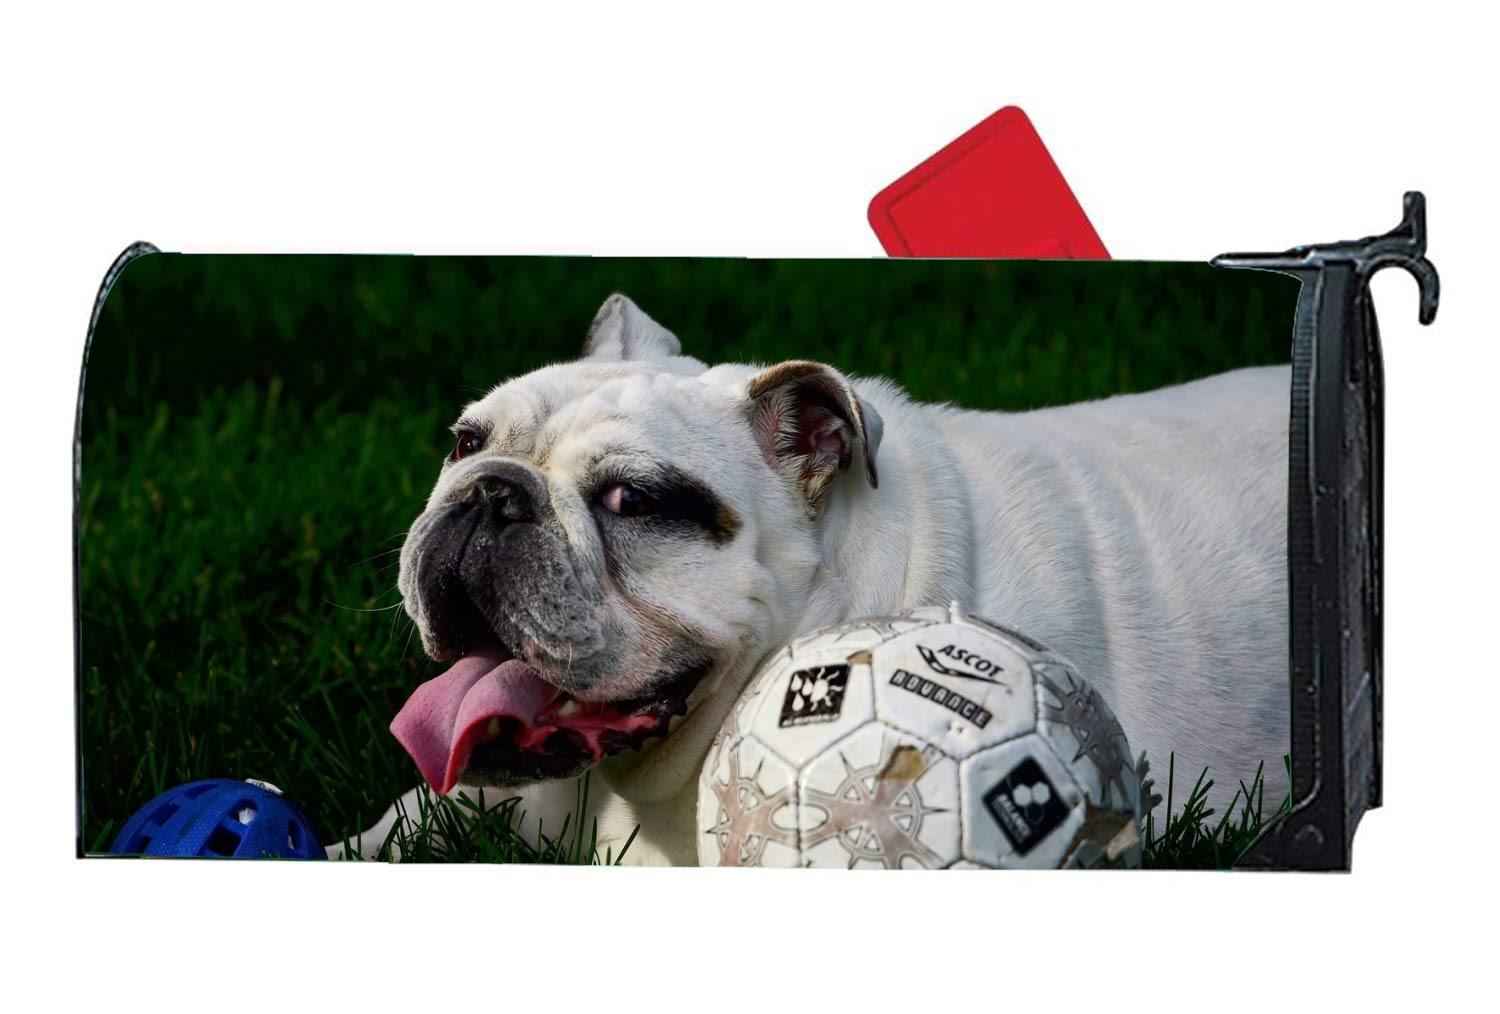 WilBstrn Dog Football Mailbox Covers Garden Decoration - Seasonal Magnetic Cover